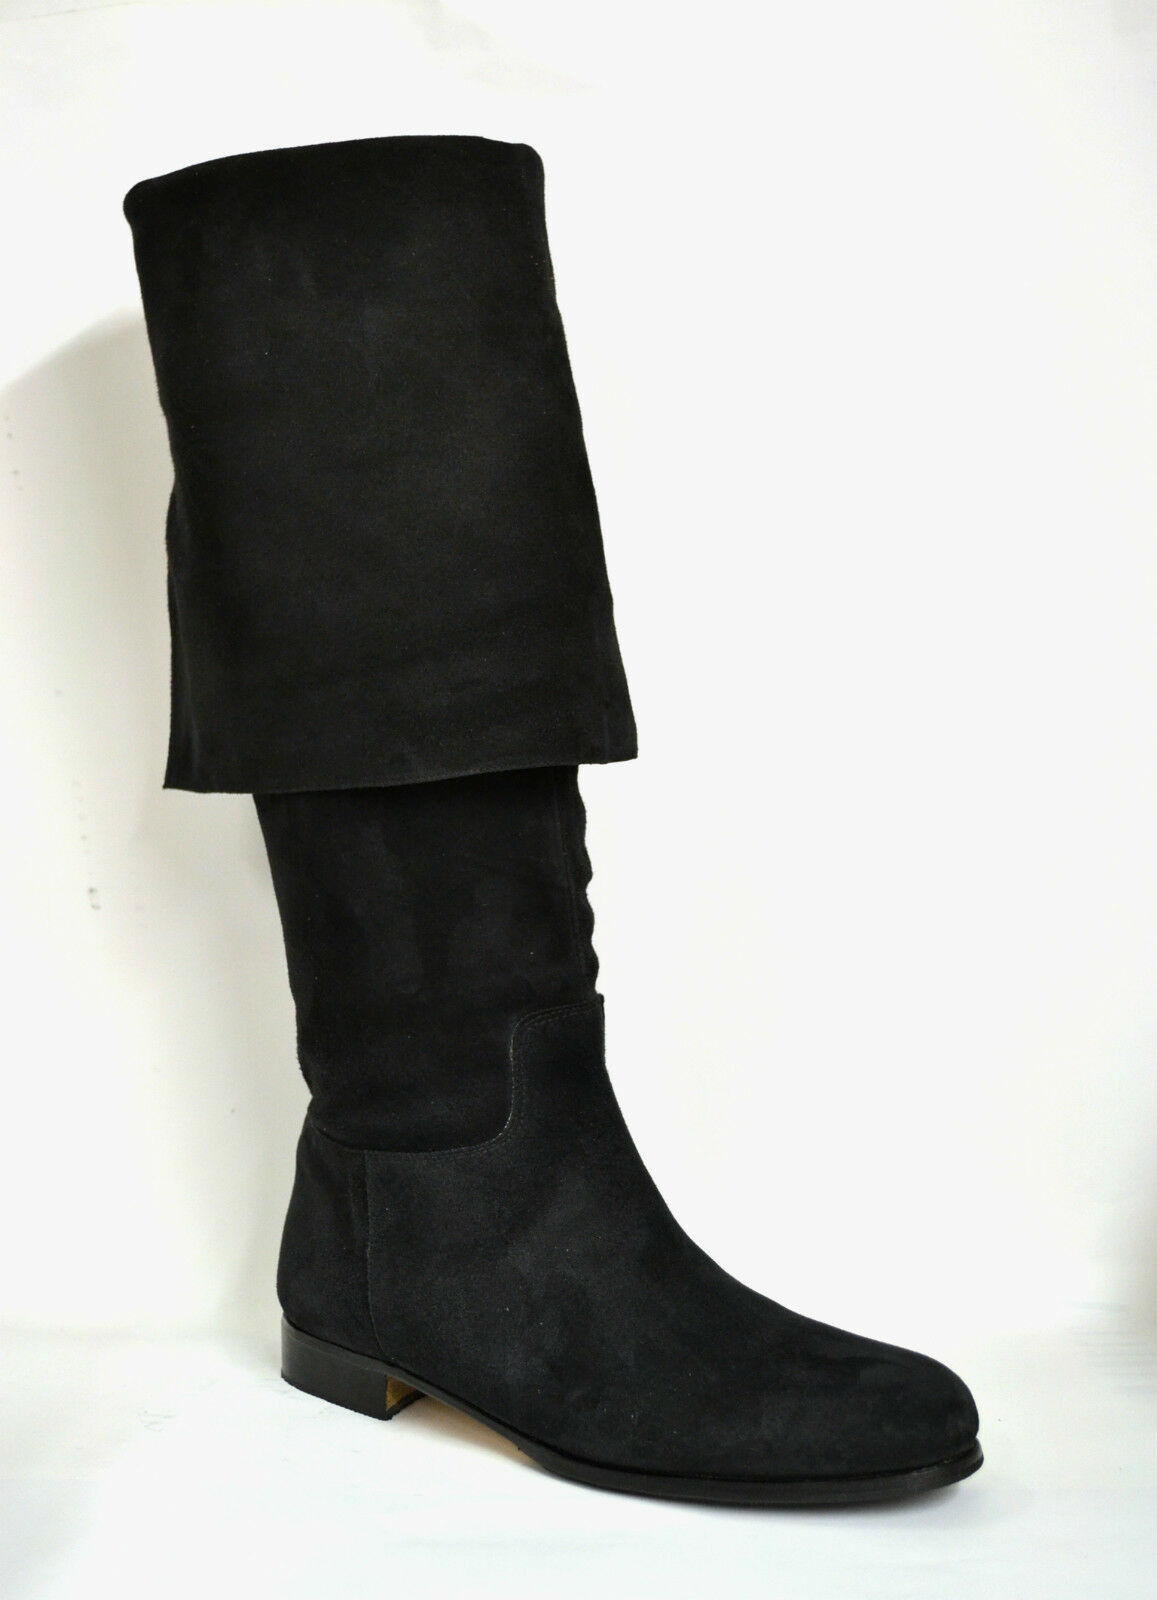 Boots man Teague Sparrow Tailored Real Suede Black Pirate Cosplay